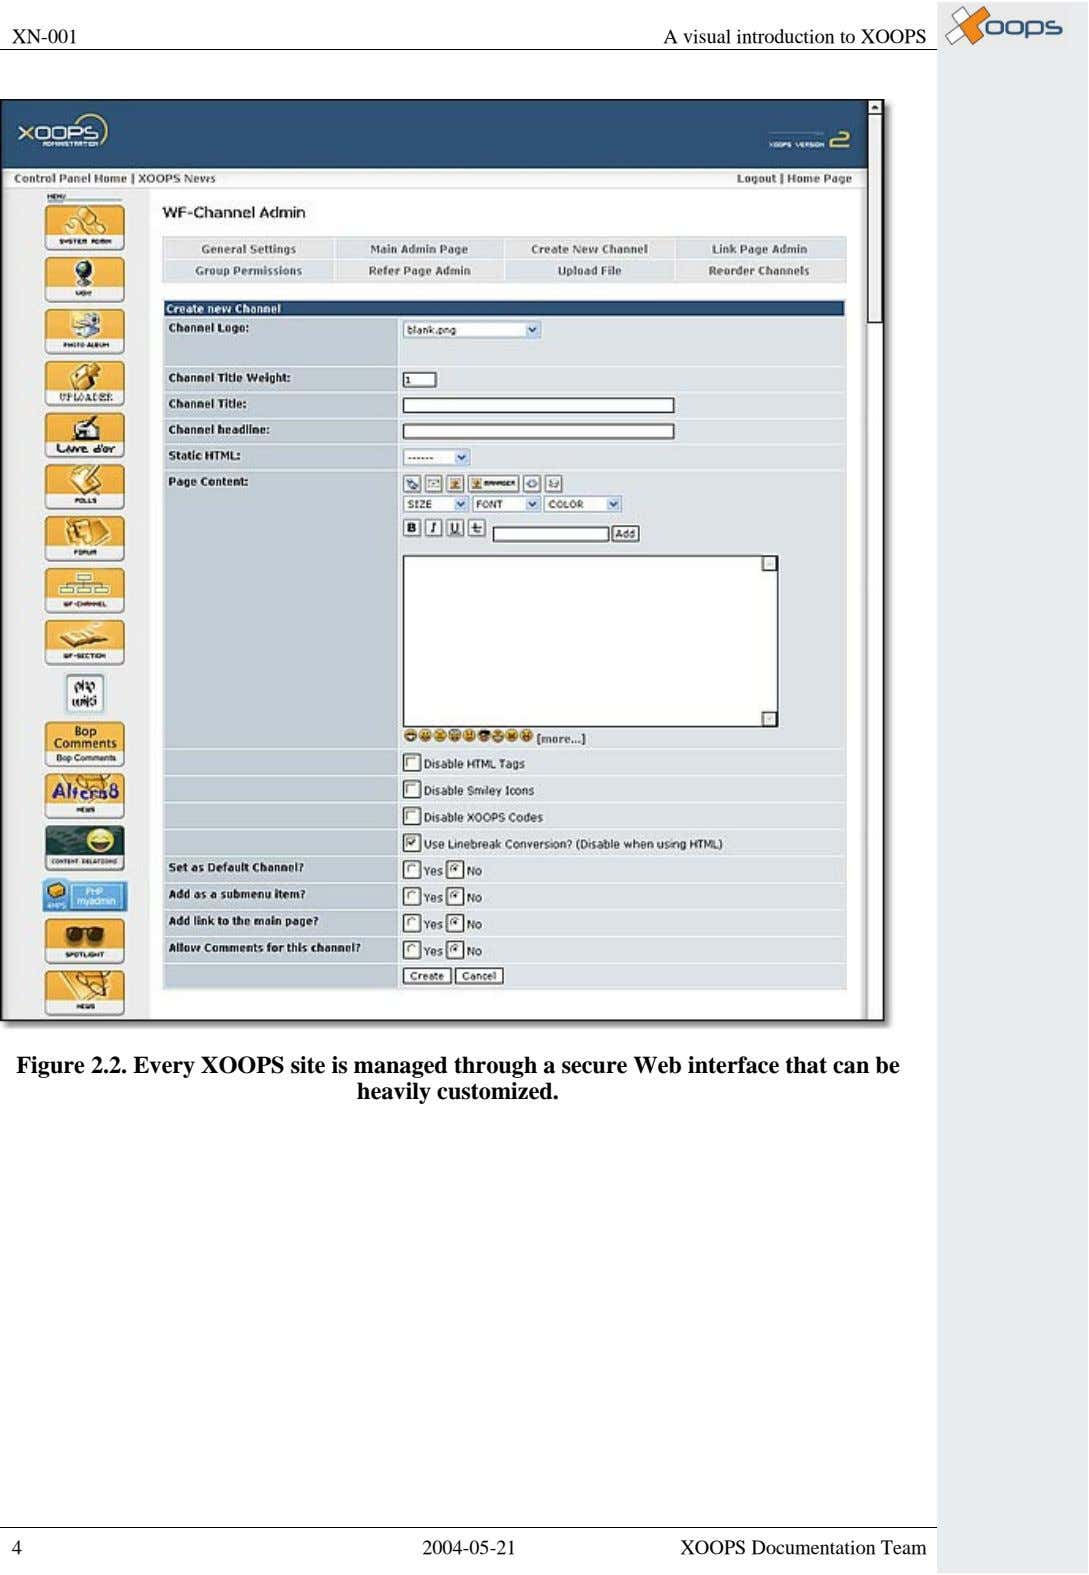 XN-001 A visual introduction to XOOPS Figure 2.2. Every XOOPS site is managed through a